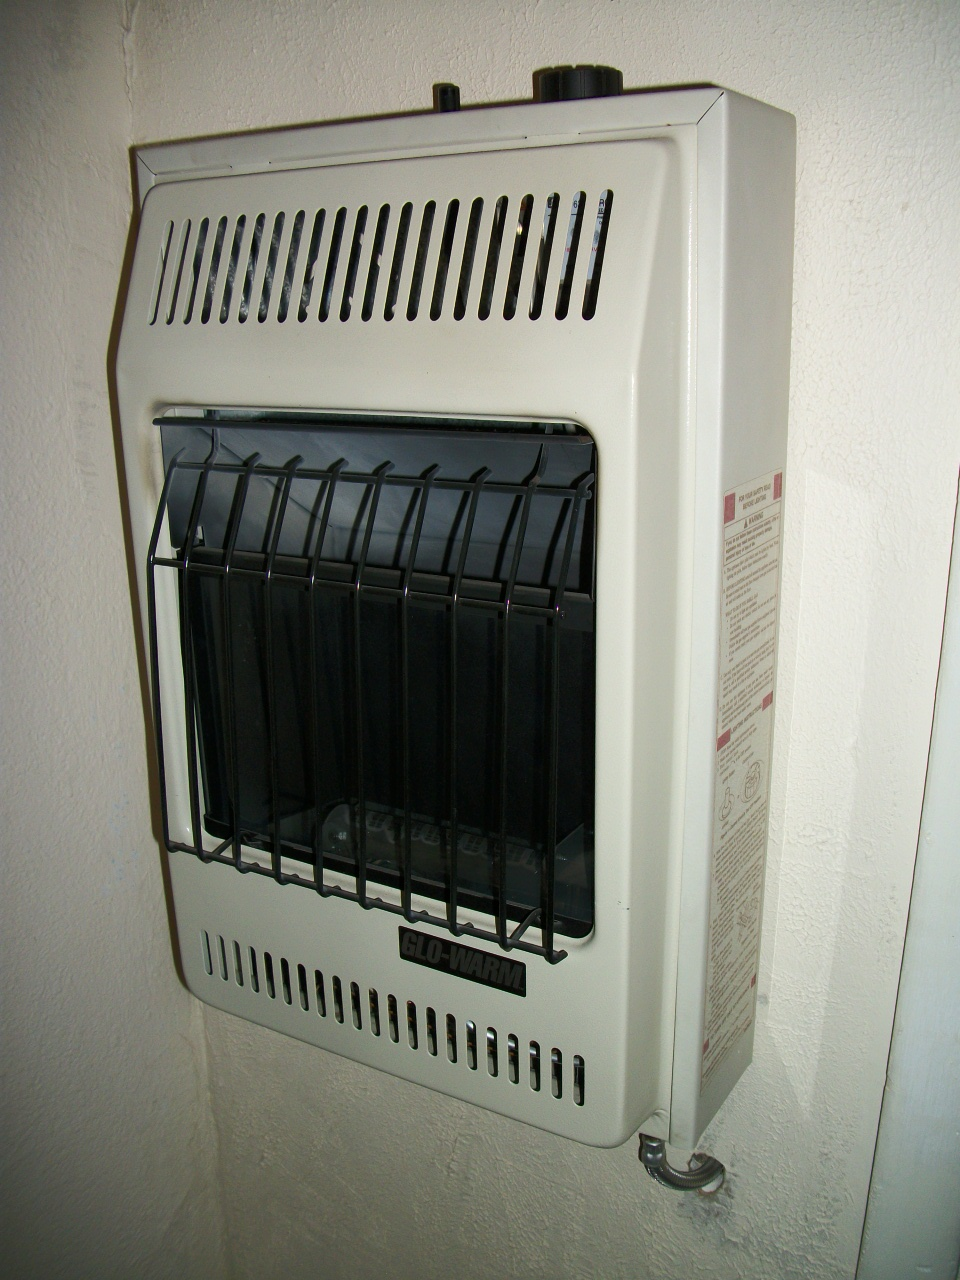 Unvented space heaters produce Carbon Monoxide and other toxins that stay in your home